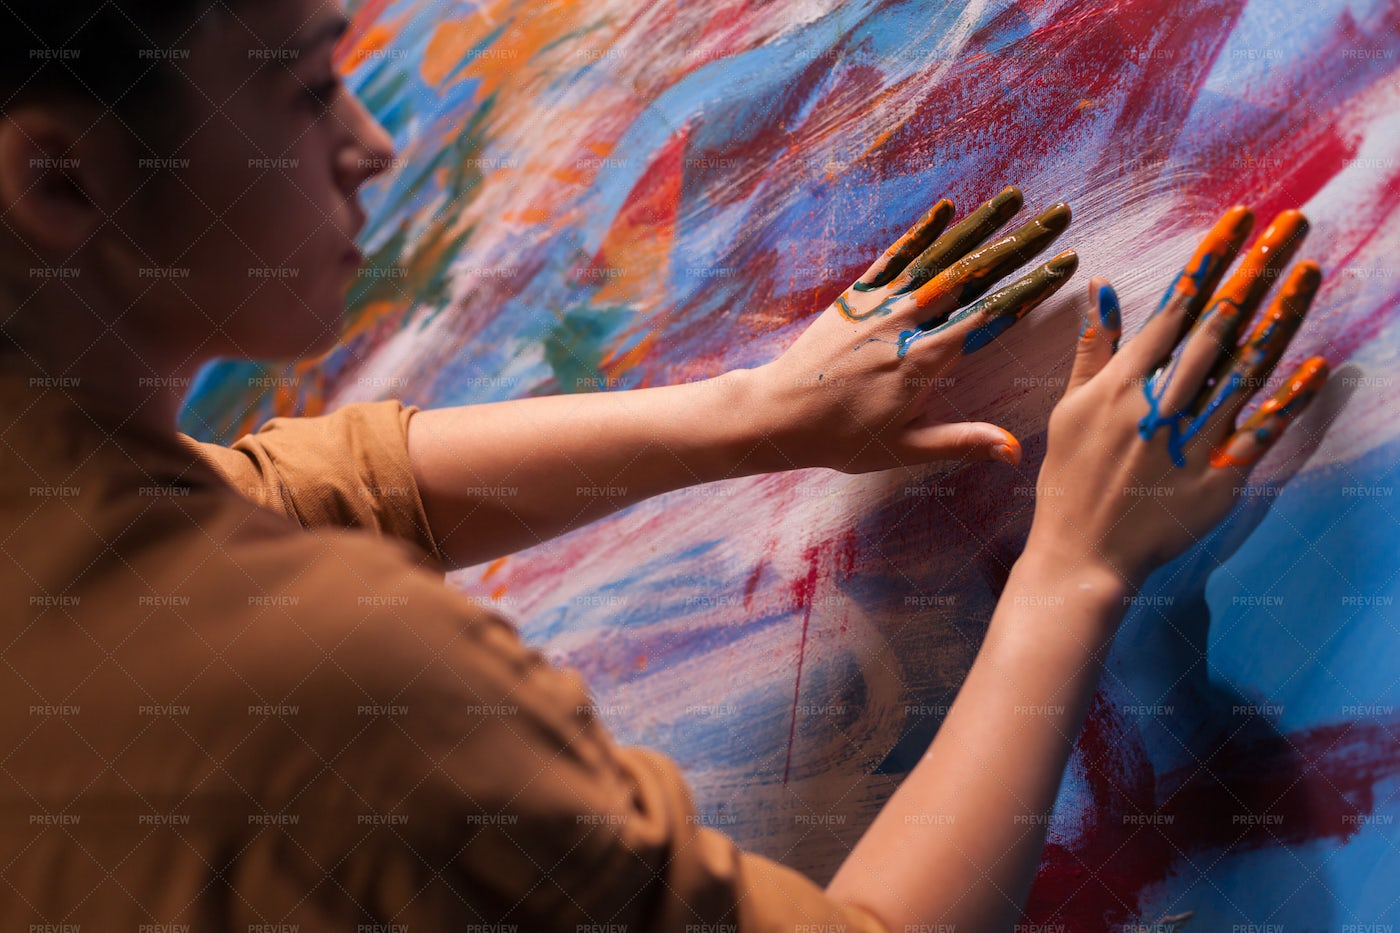 Painting With Her Fingers: Stock Photos